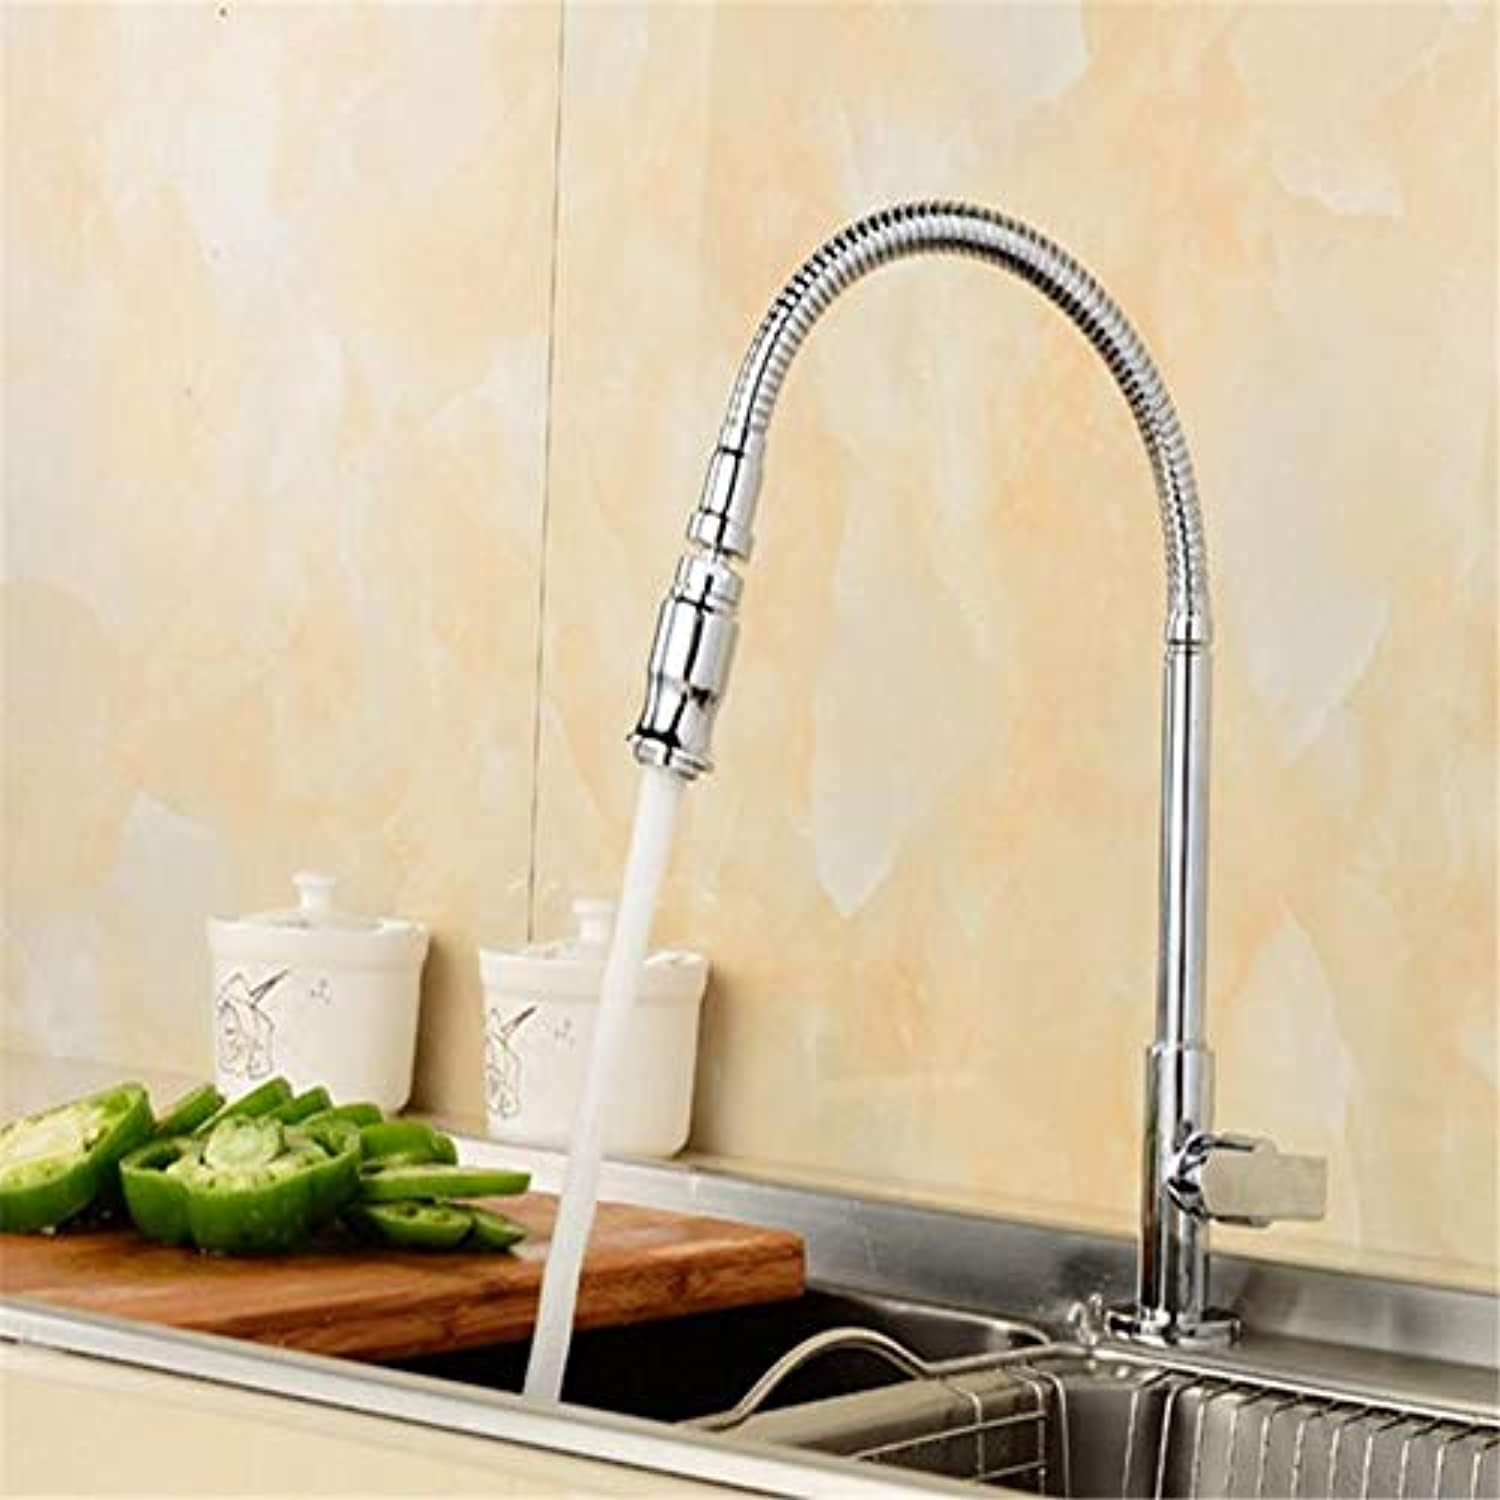 Kitchen Sink Taps Single Cold Faucet Universal Conversion Faucet Copper Kitchen Faucet